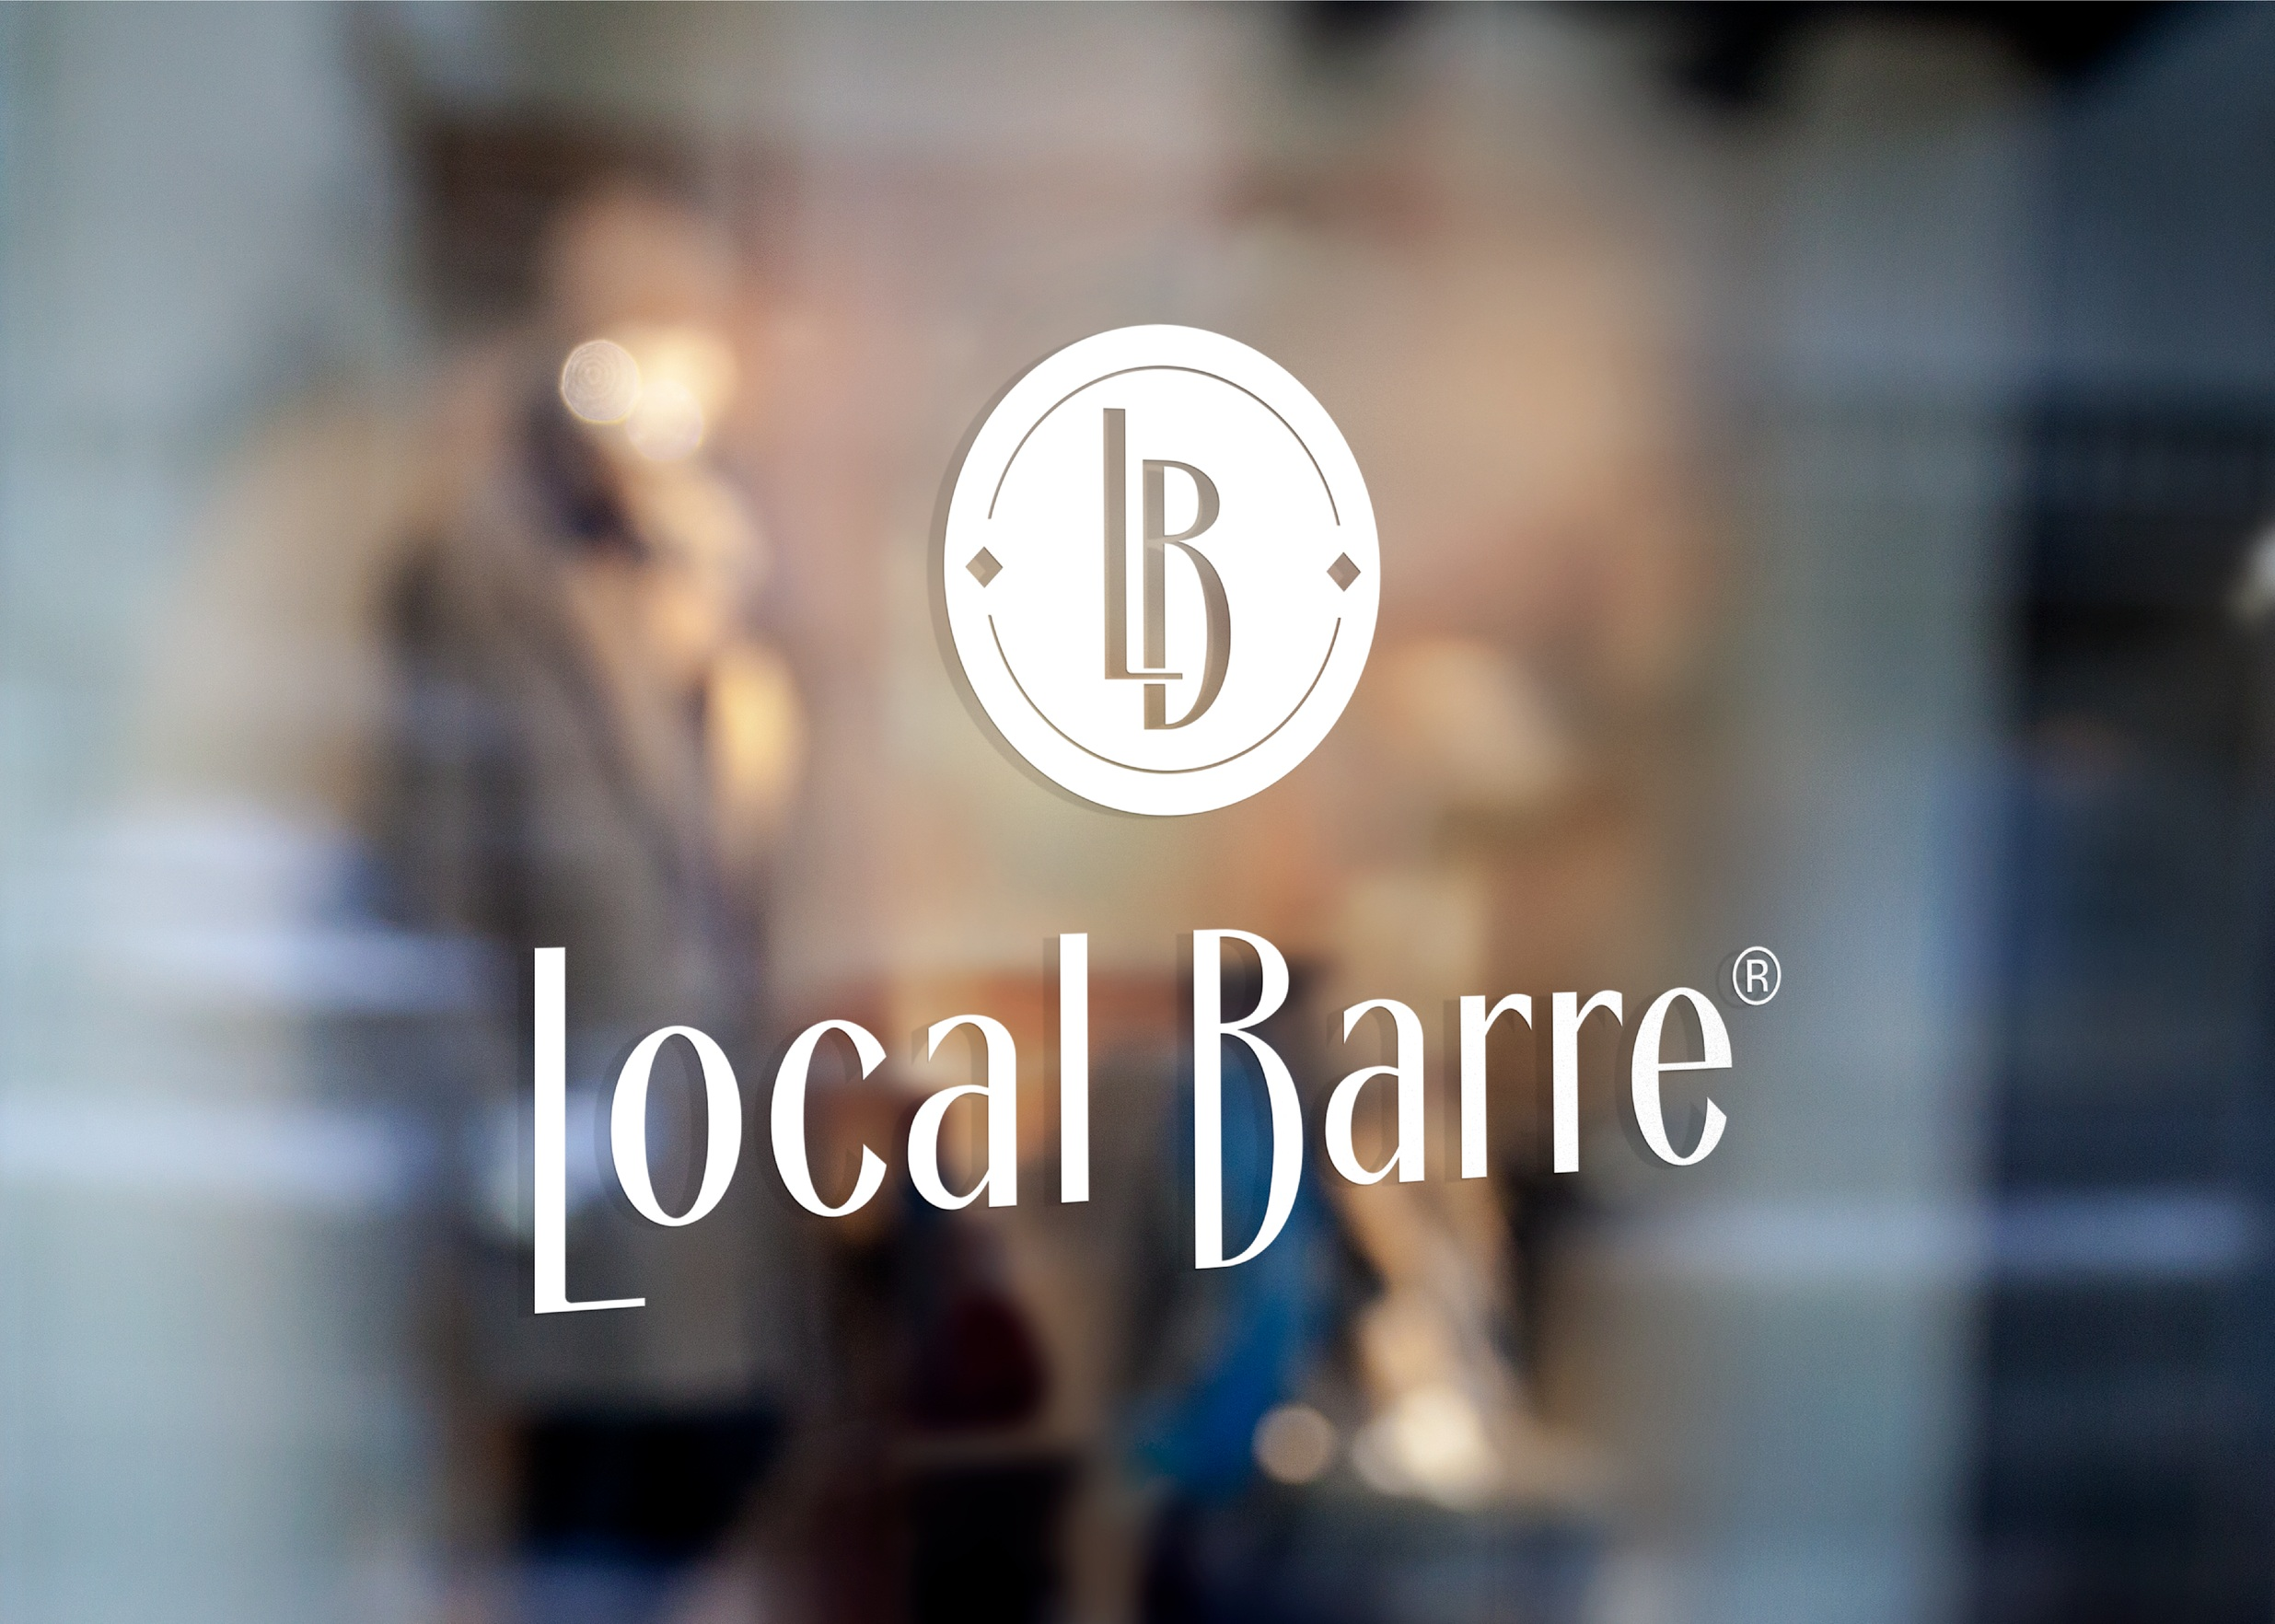 Local+Barre+for+Squarespace-04.png